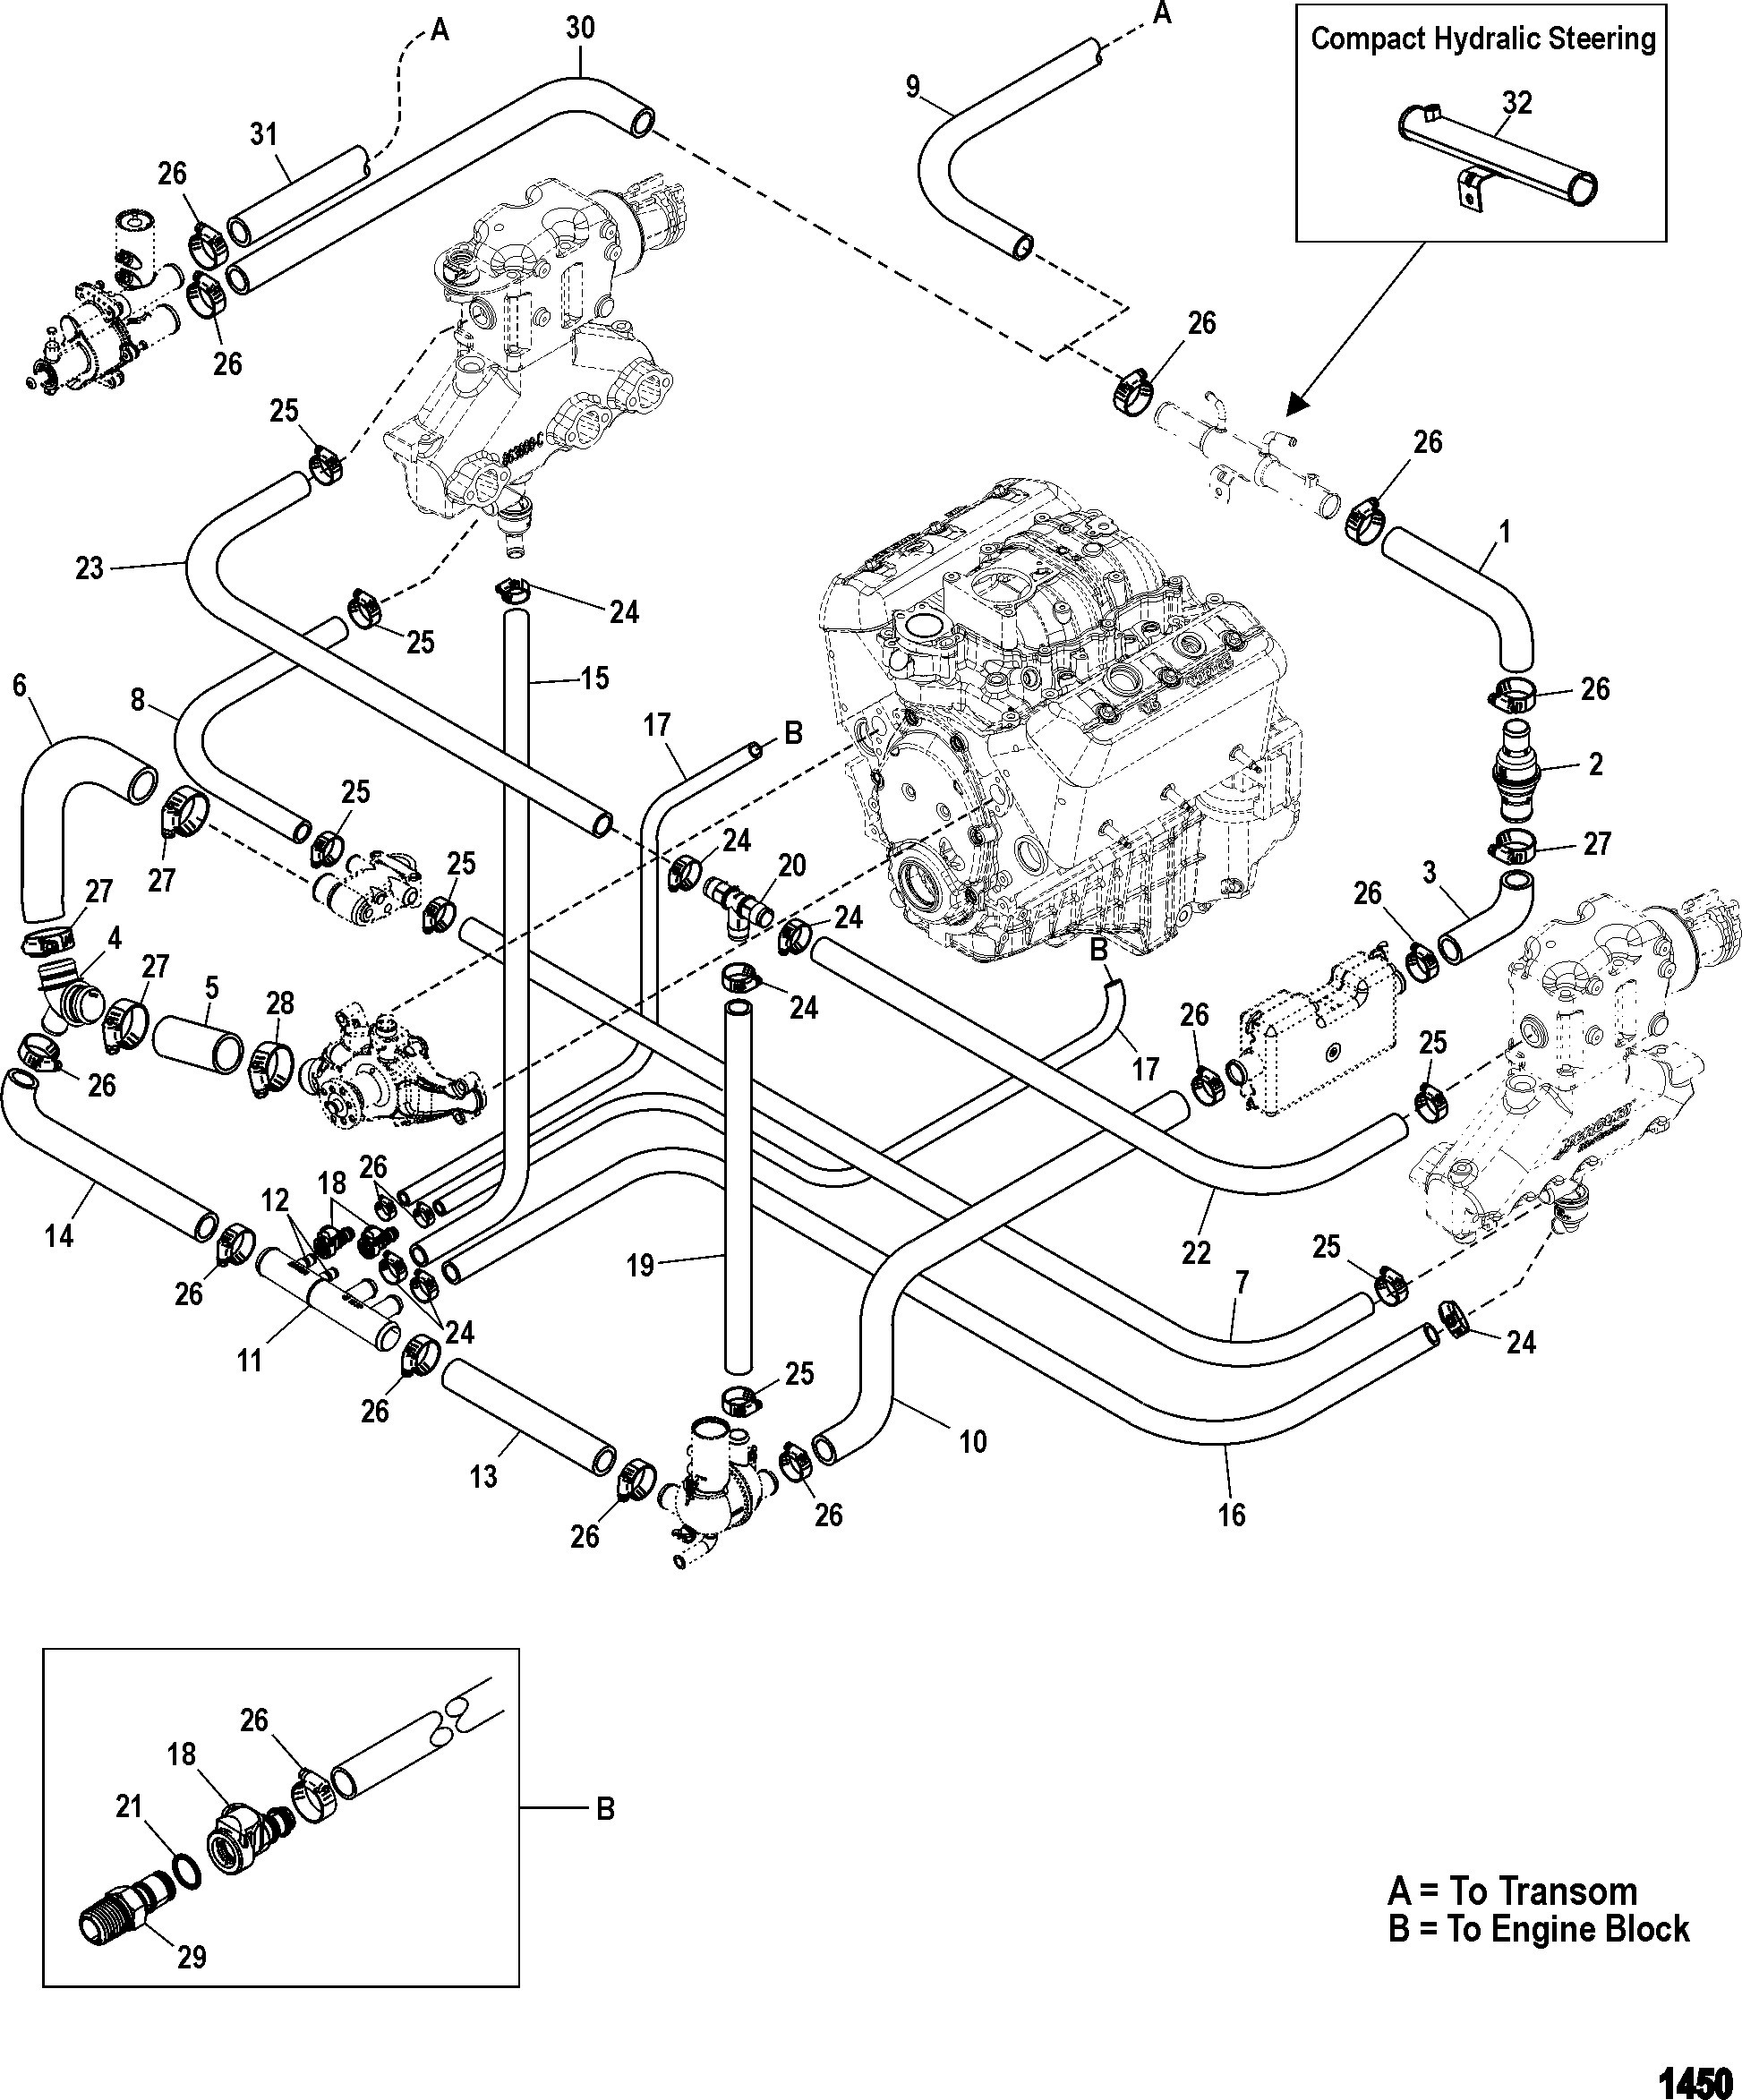 4 3 Vortec Engine Diagram Elegant 4 3 Vortec Wiring Diagram Diagram Of 4 3 Vortec Engine Diagram